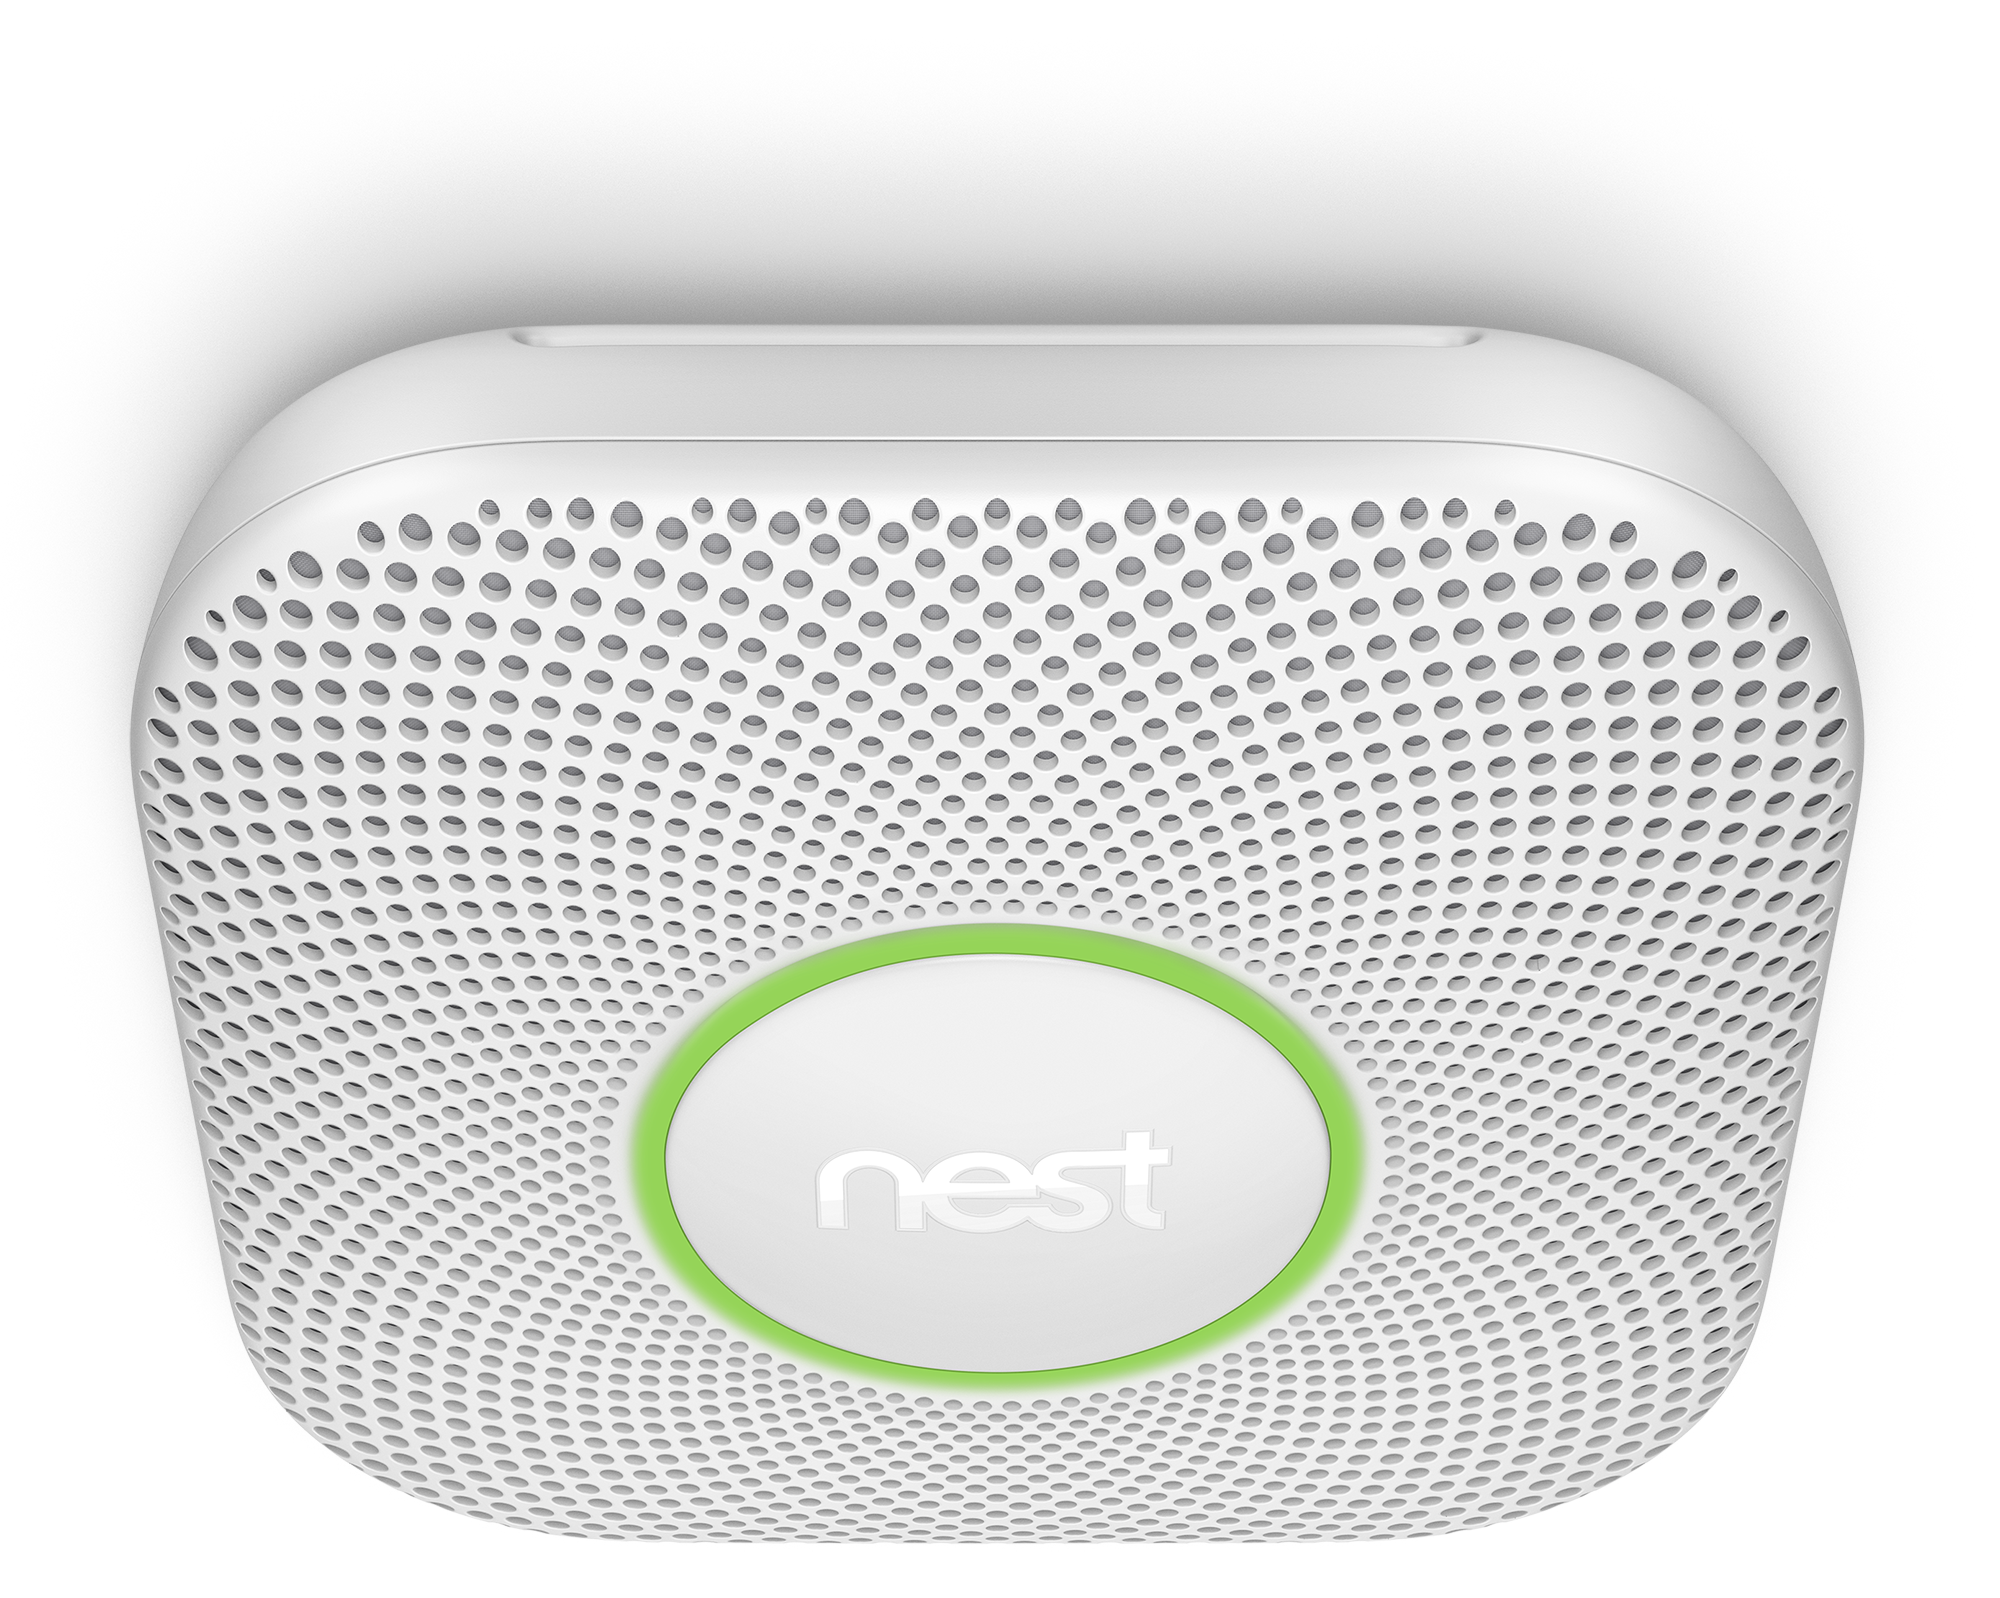 Smoke-Alarm_Nest_Protect_White_3-4_03_Green.png